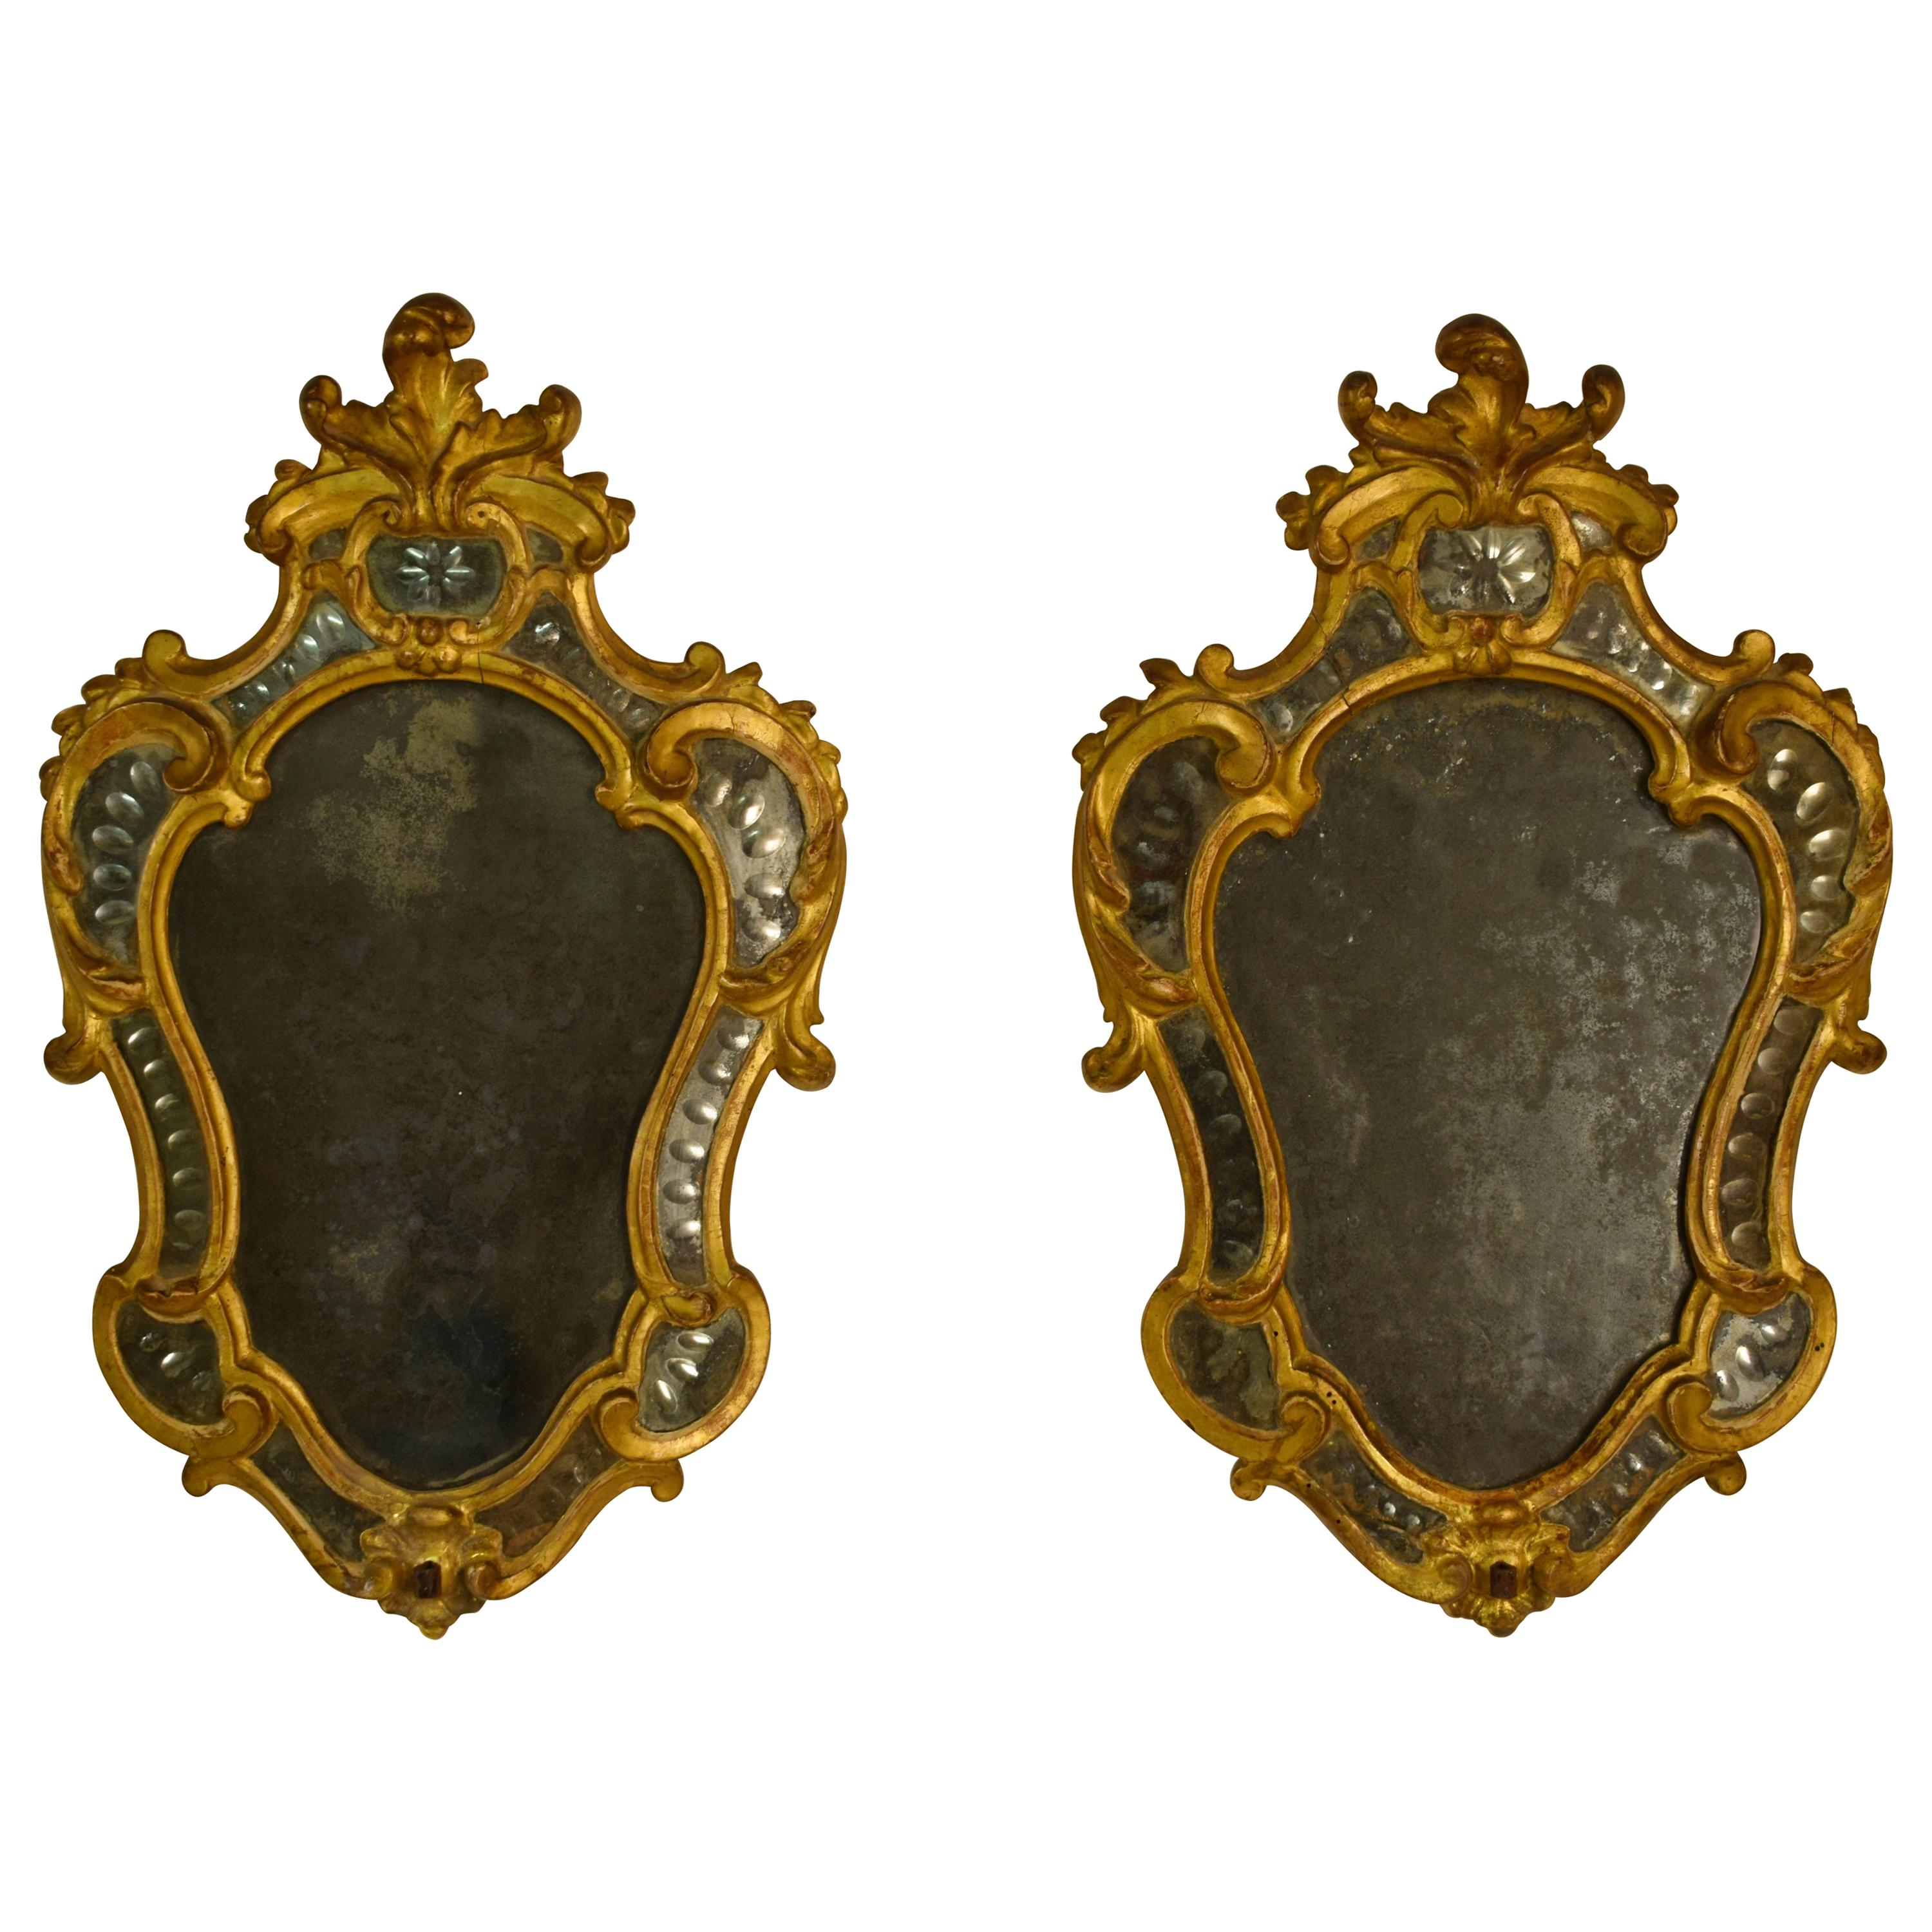 18th Century, Giltwood Pair of Italian Louis XV Candle Wall Sconce with Mirror